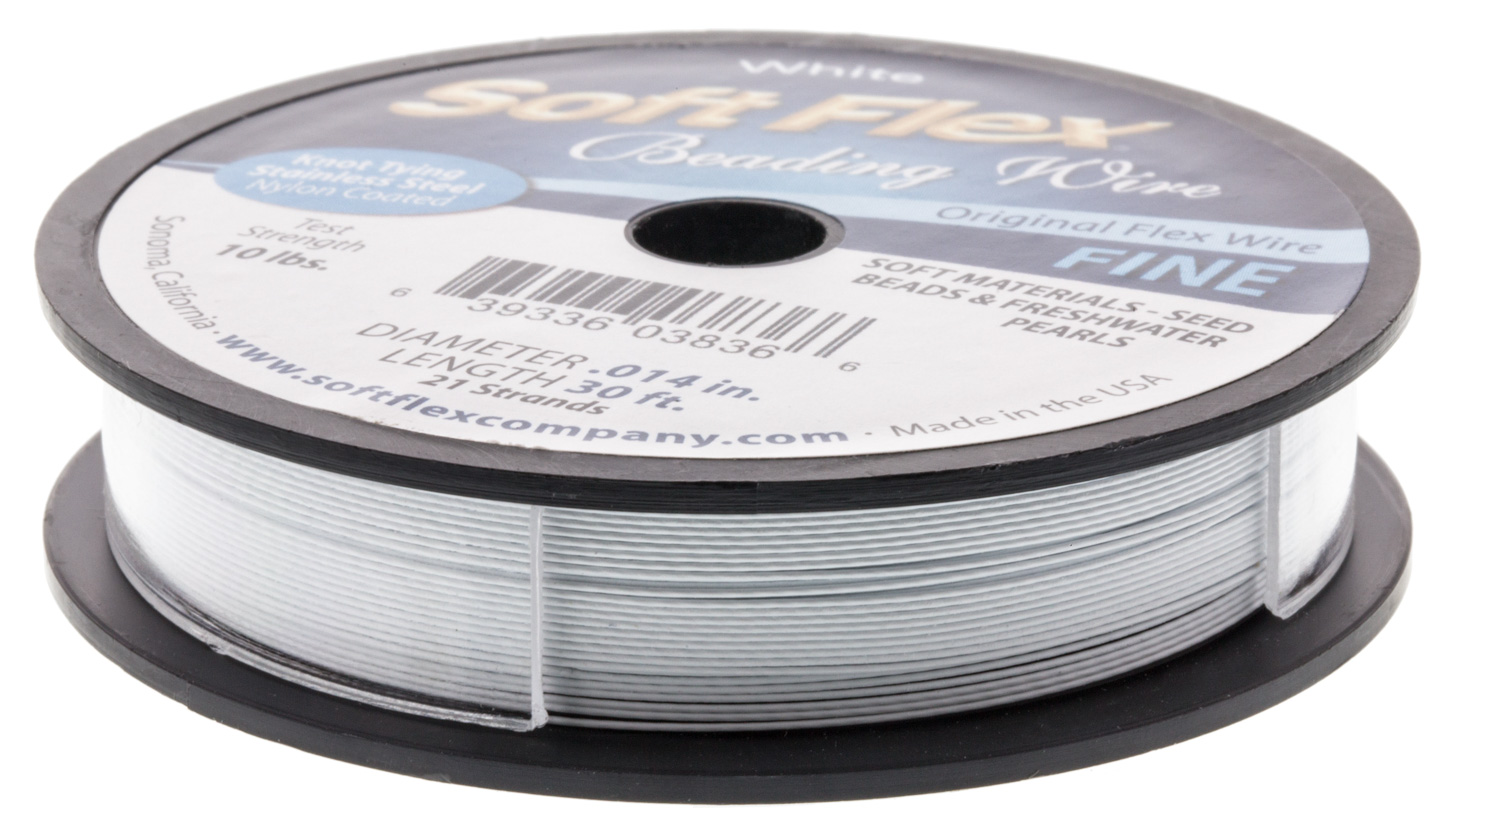 Soft Flex Wire .014 Dia, 30ft Sp-white 654207112501 | eBay